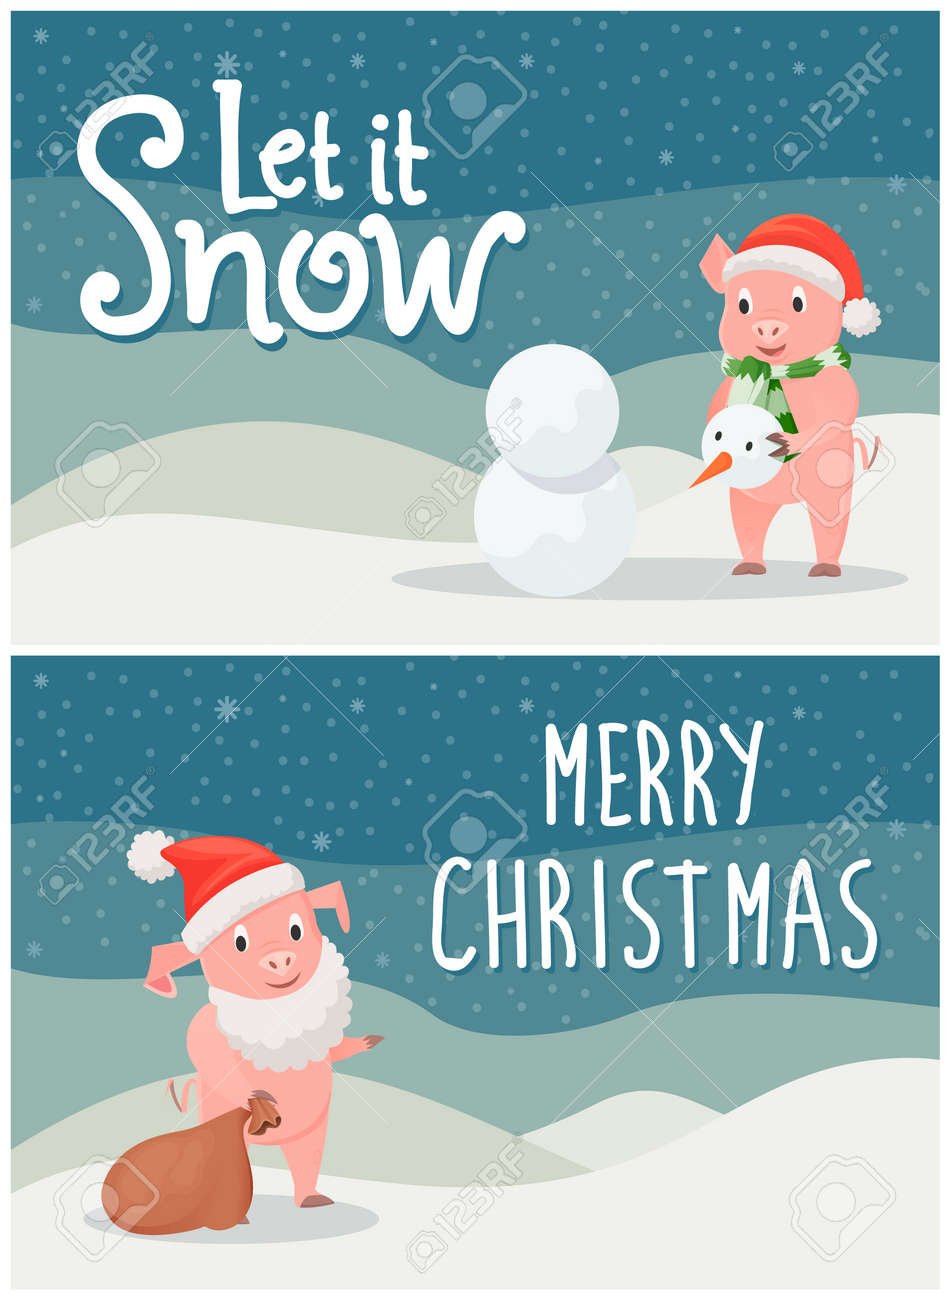 Christmas Postcards.Let It Snow Merry Christmas Postcards With Pigs